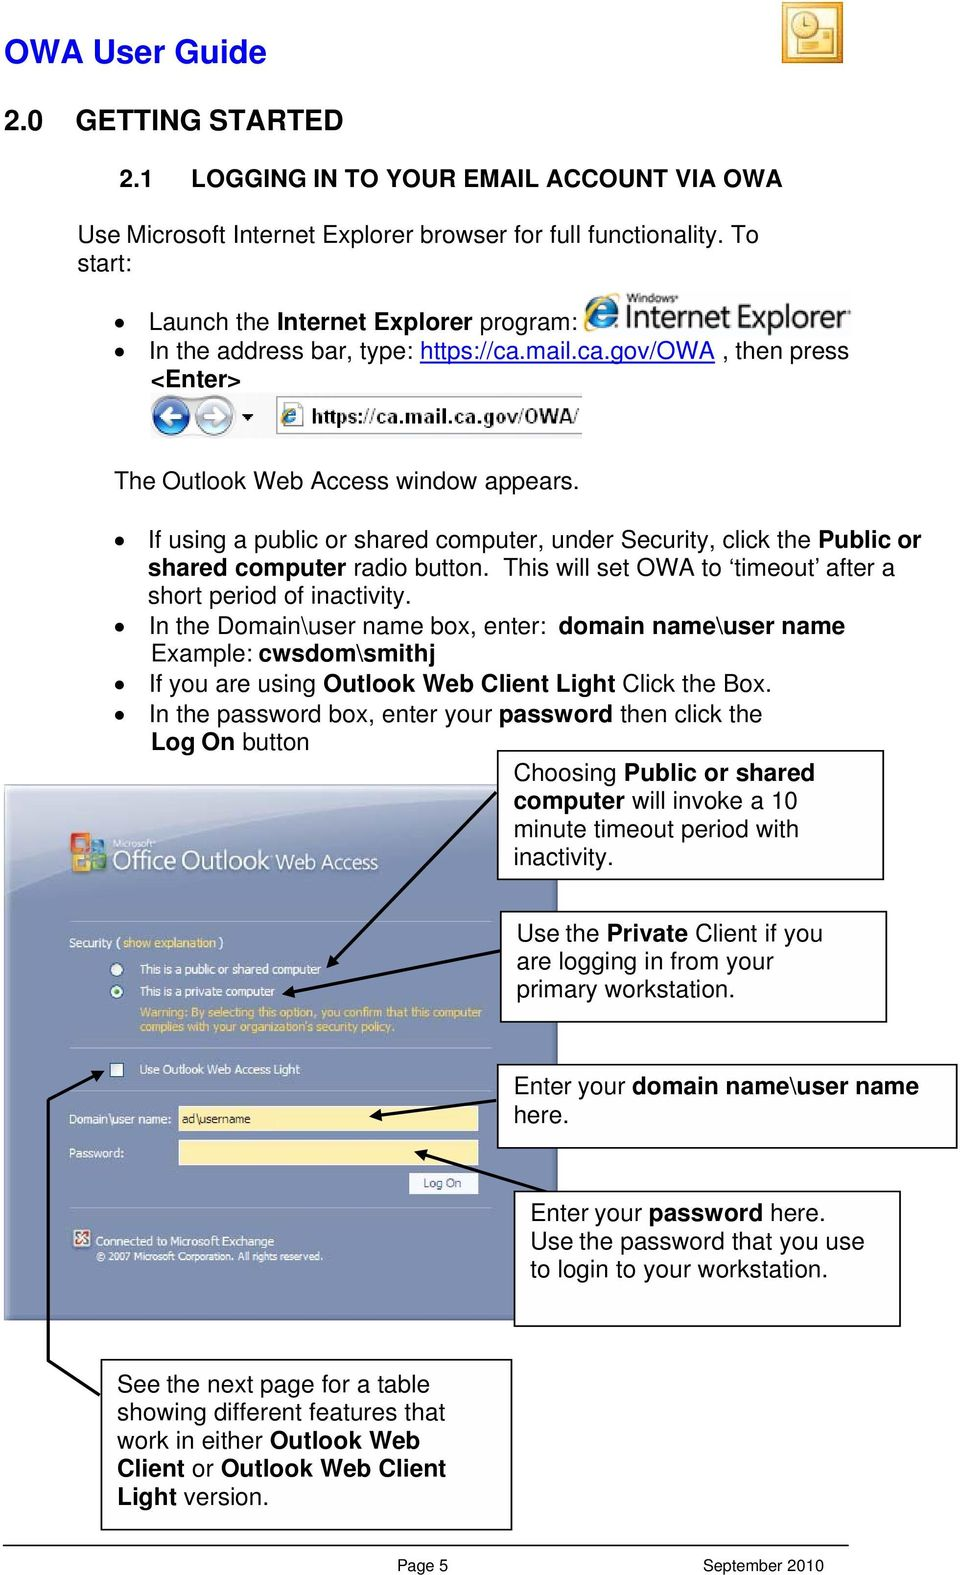 If using a public or shared computer, under Security, click the Public or shared computer radio button. This will set OWA to timeout after a short period of inactivity.